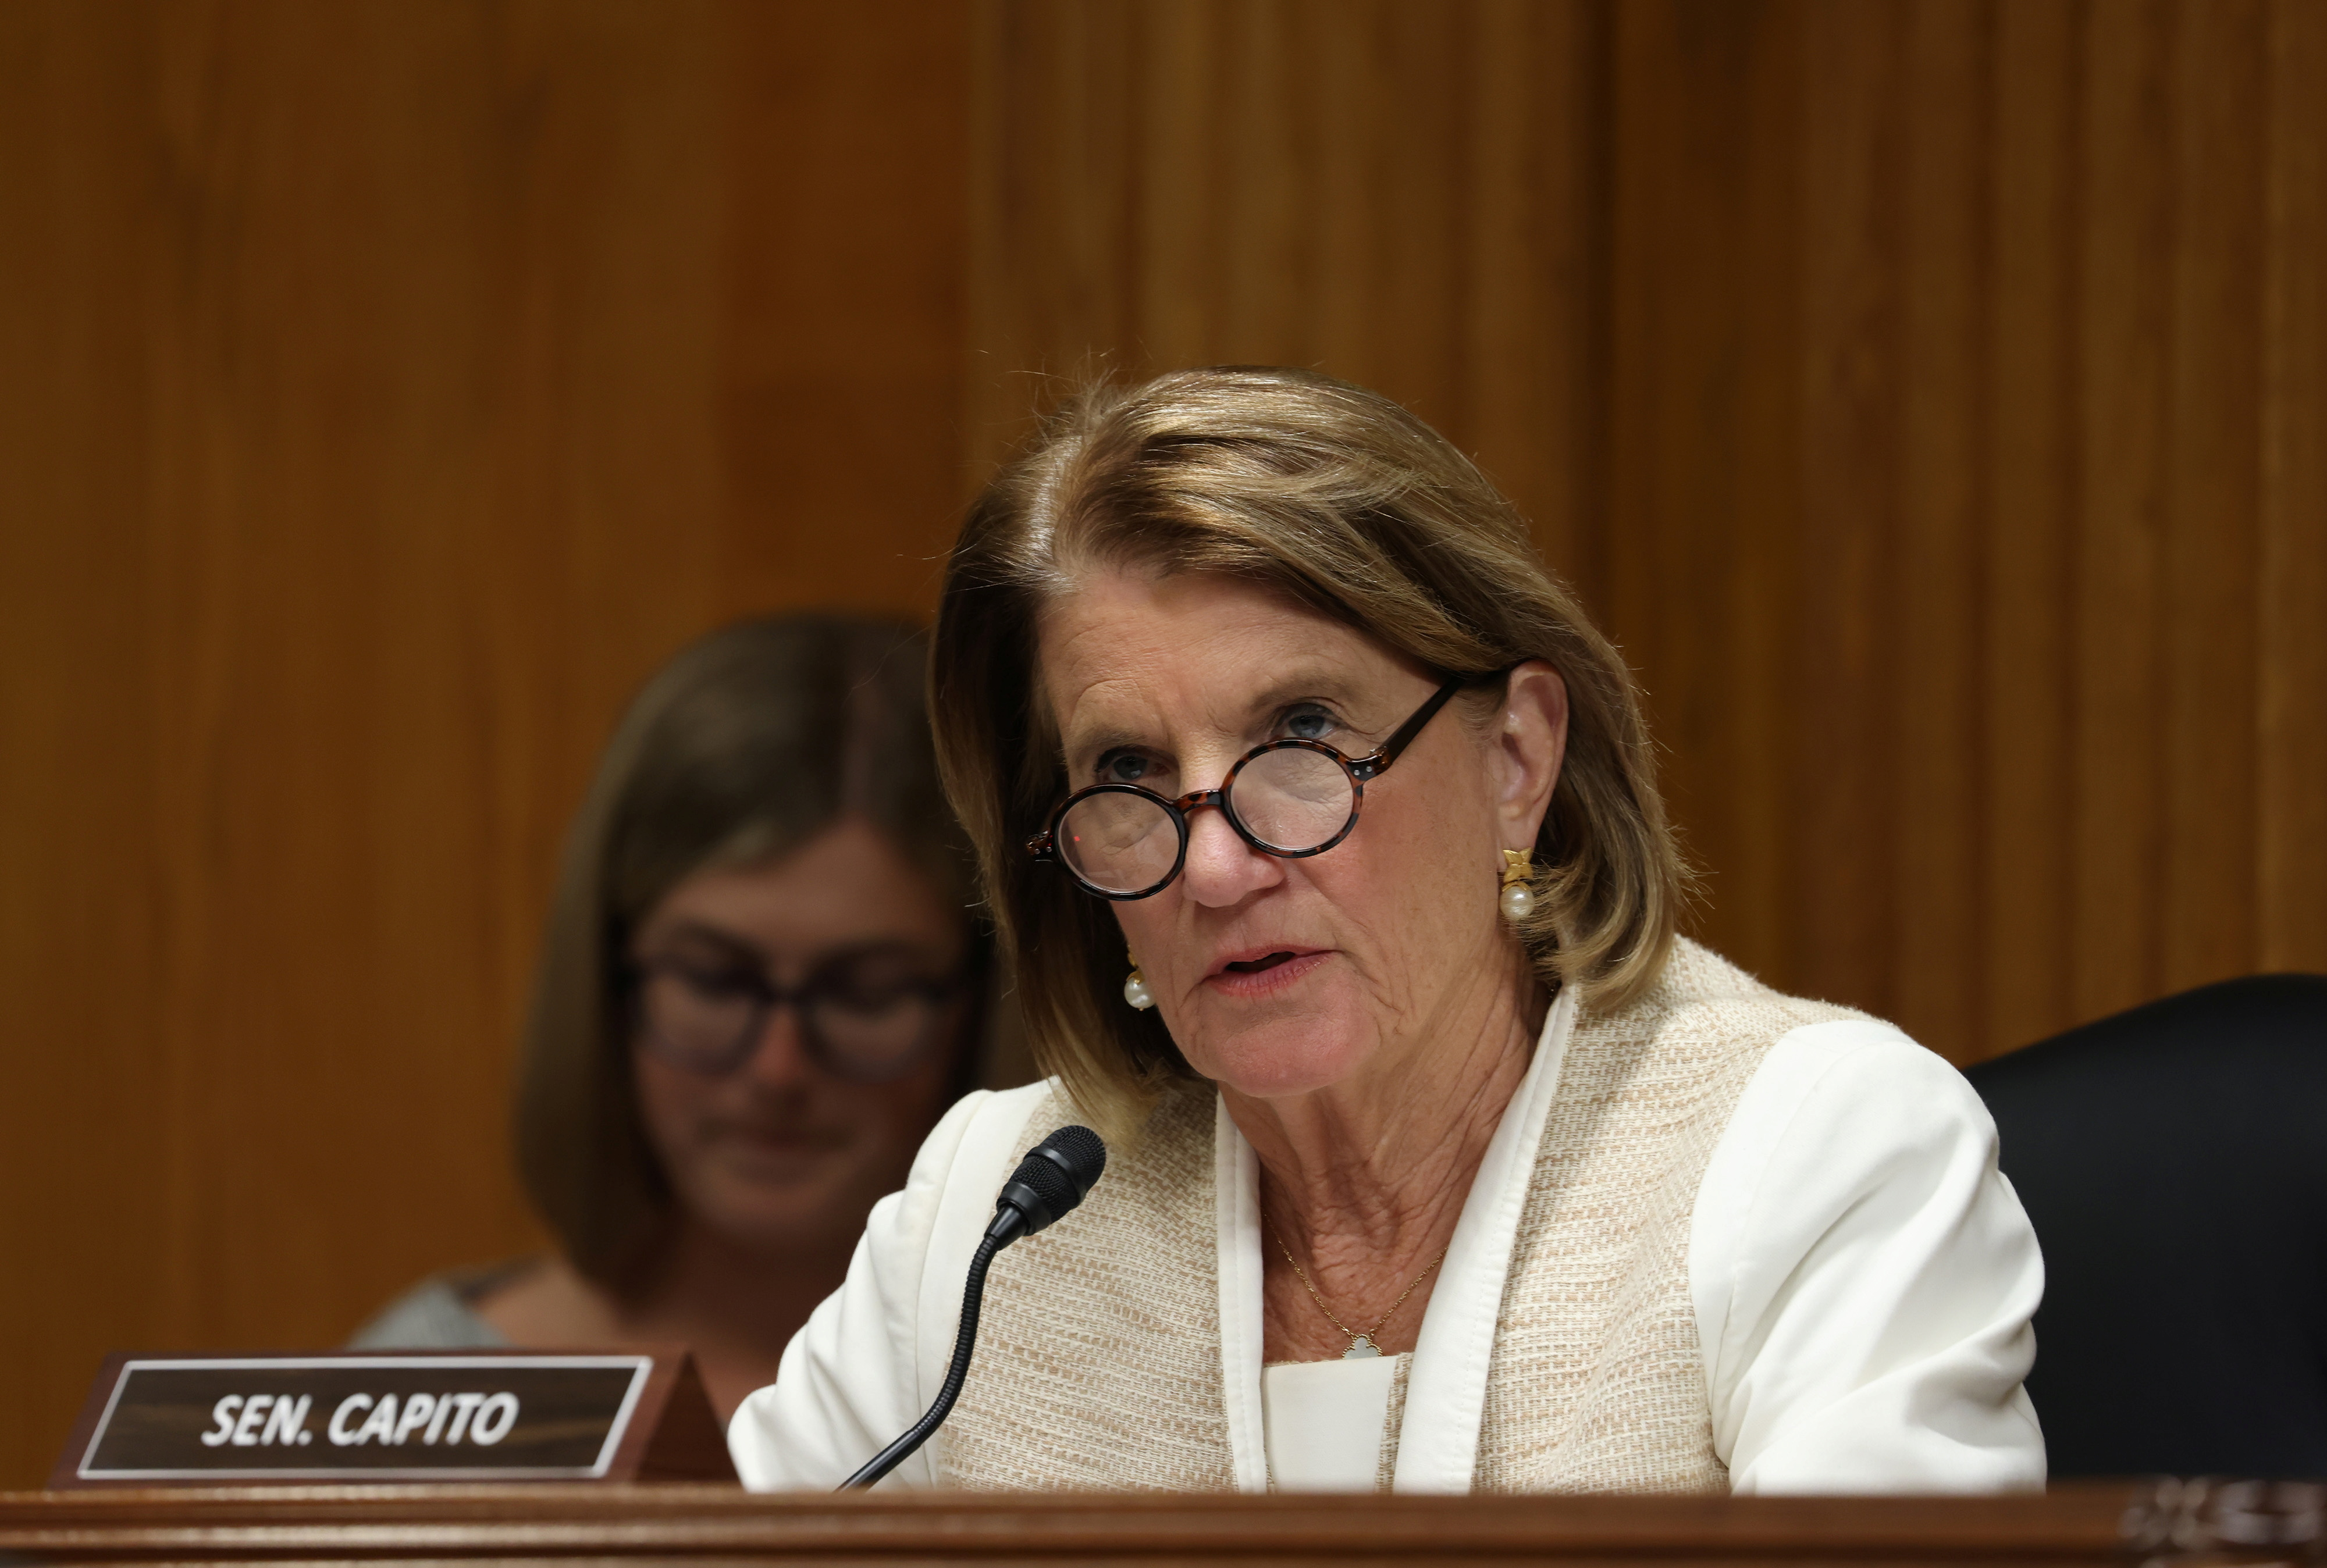 U.S. Sen. Shelley Moore Capito, R-WV, questions Xavier Becerra, Secretary of the Department of Health and Human Services (HHS), as he testifies before a Senate Appropriations Subcommittee at the U.S. Capitol in Washington, DC, U.S. June 9, 2021. Tasos Katopodis/Pool via REUTERS